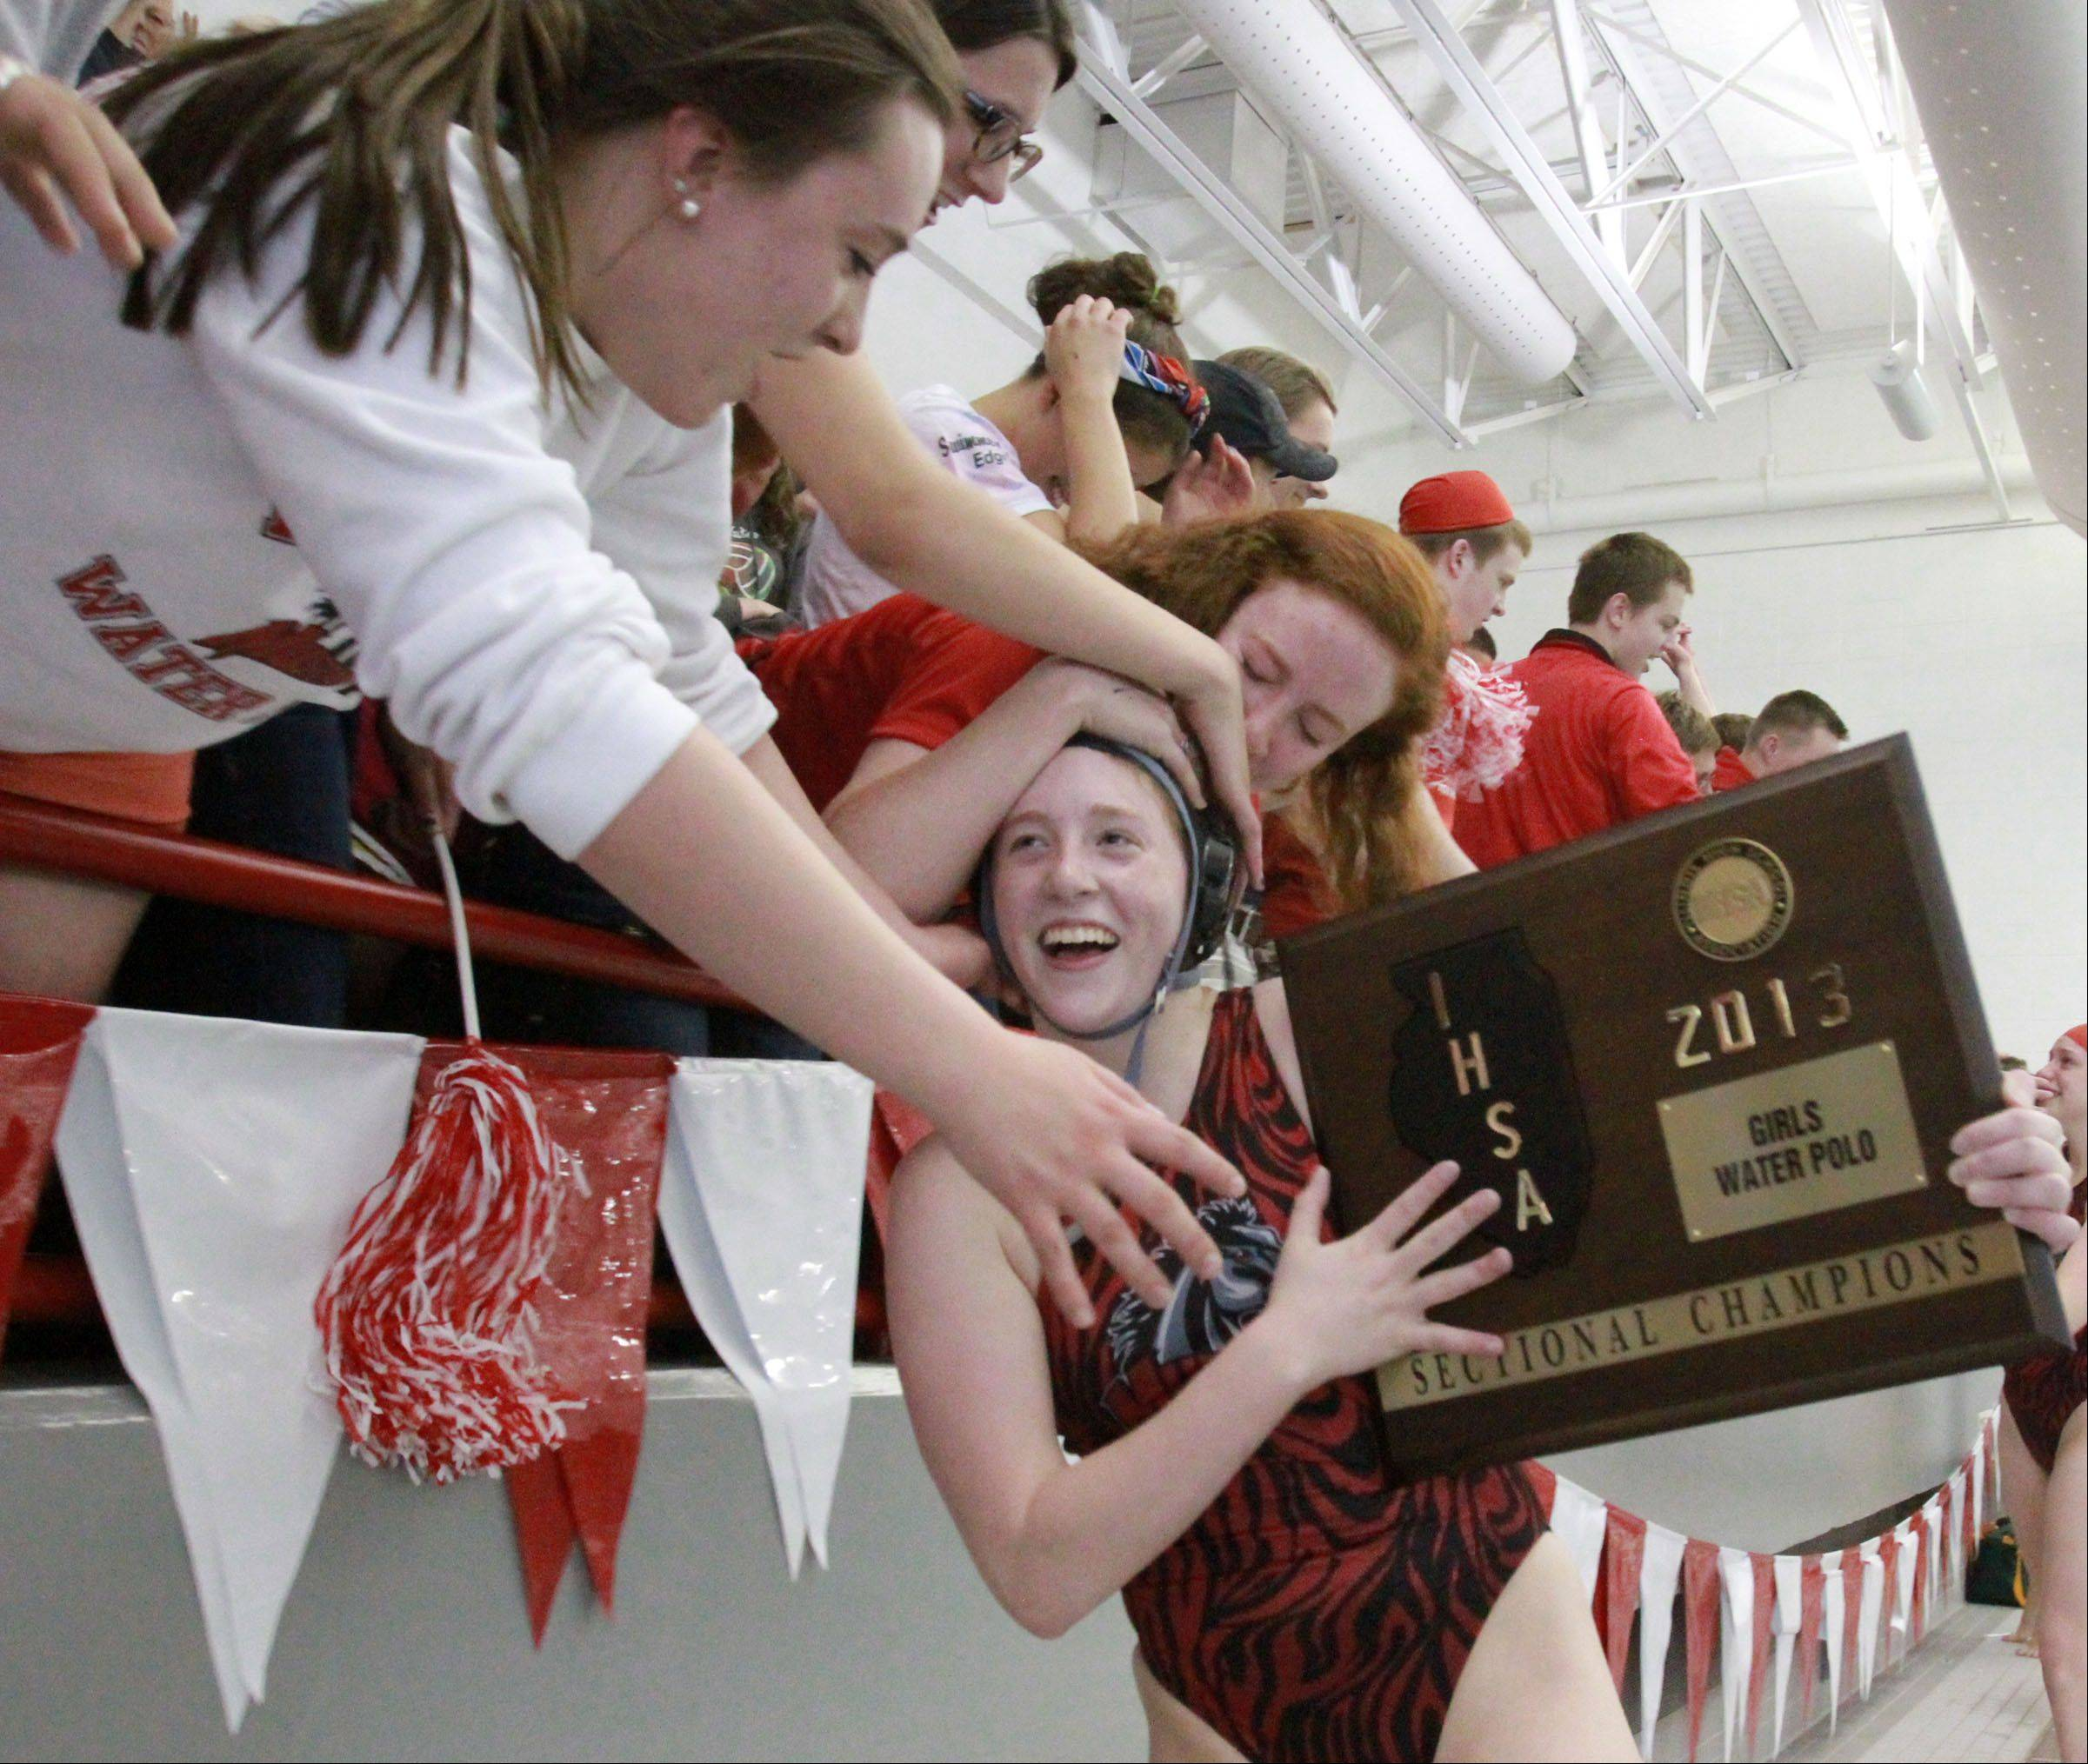 Mundelein's Allie Boothe holds the sectional championship plaque and gets hugs from her sister Amanda, far left, and friend Megan Casali after the Mustangs' 6-5 win over Stevenson in Mundelein sectional championship play Saturday.